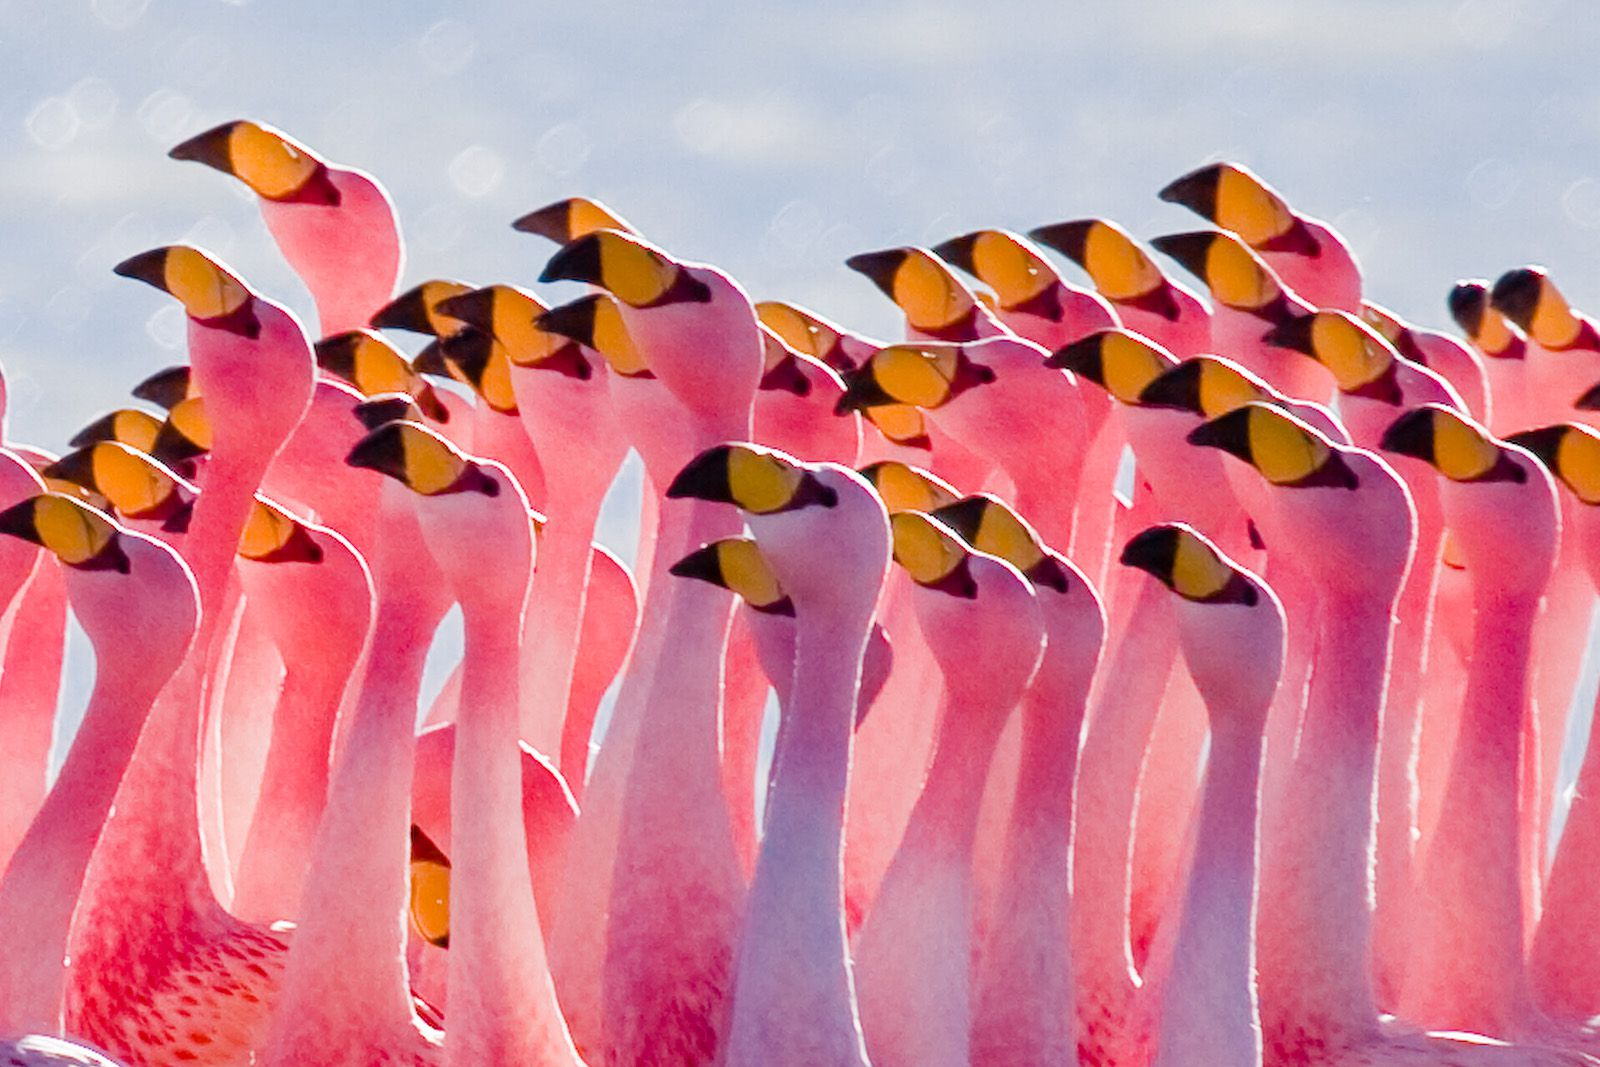 Flamingos are large birds